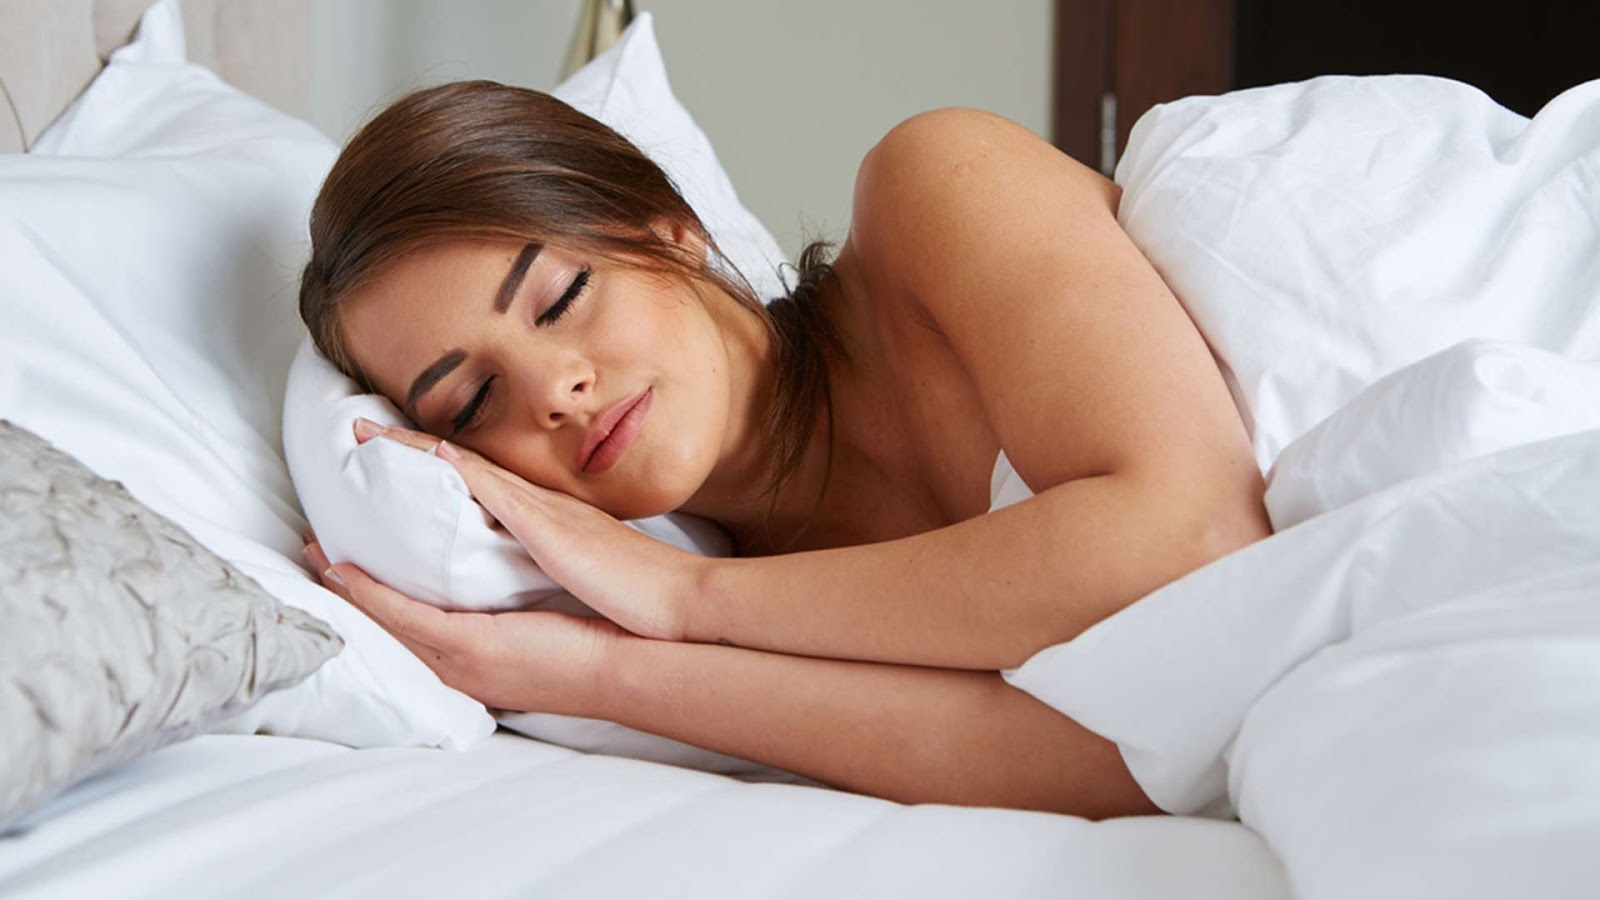 Sleeping Less Than 6 Hours Per Night Increases The Risk Of Heart Attack By 35%